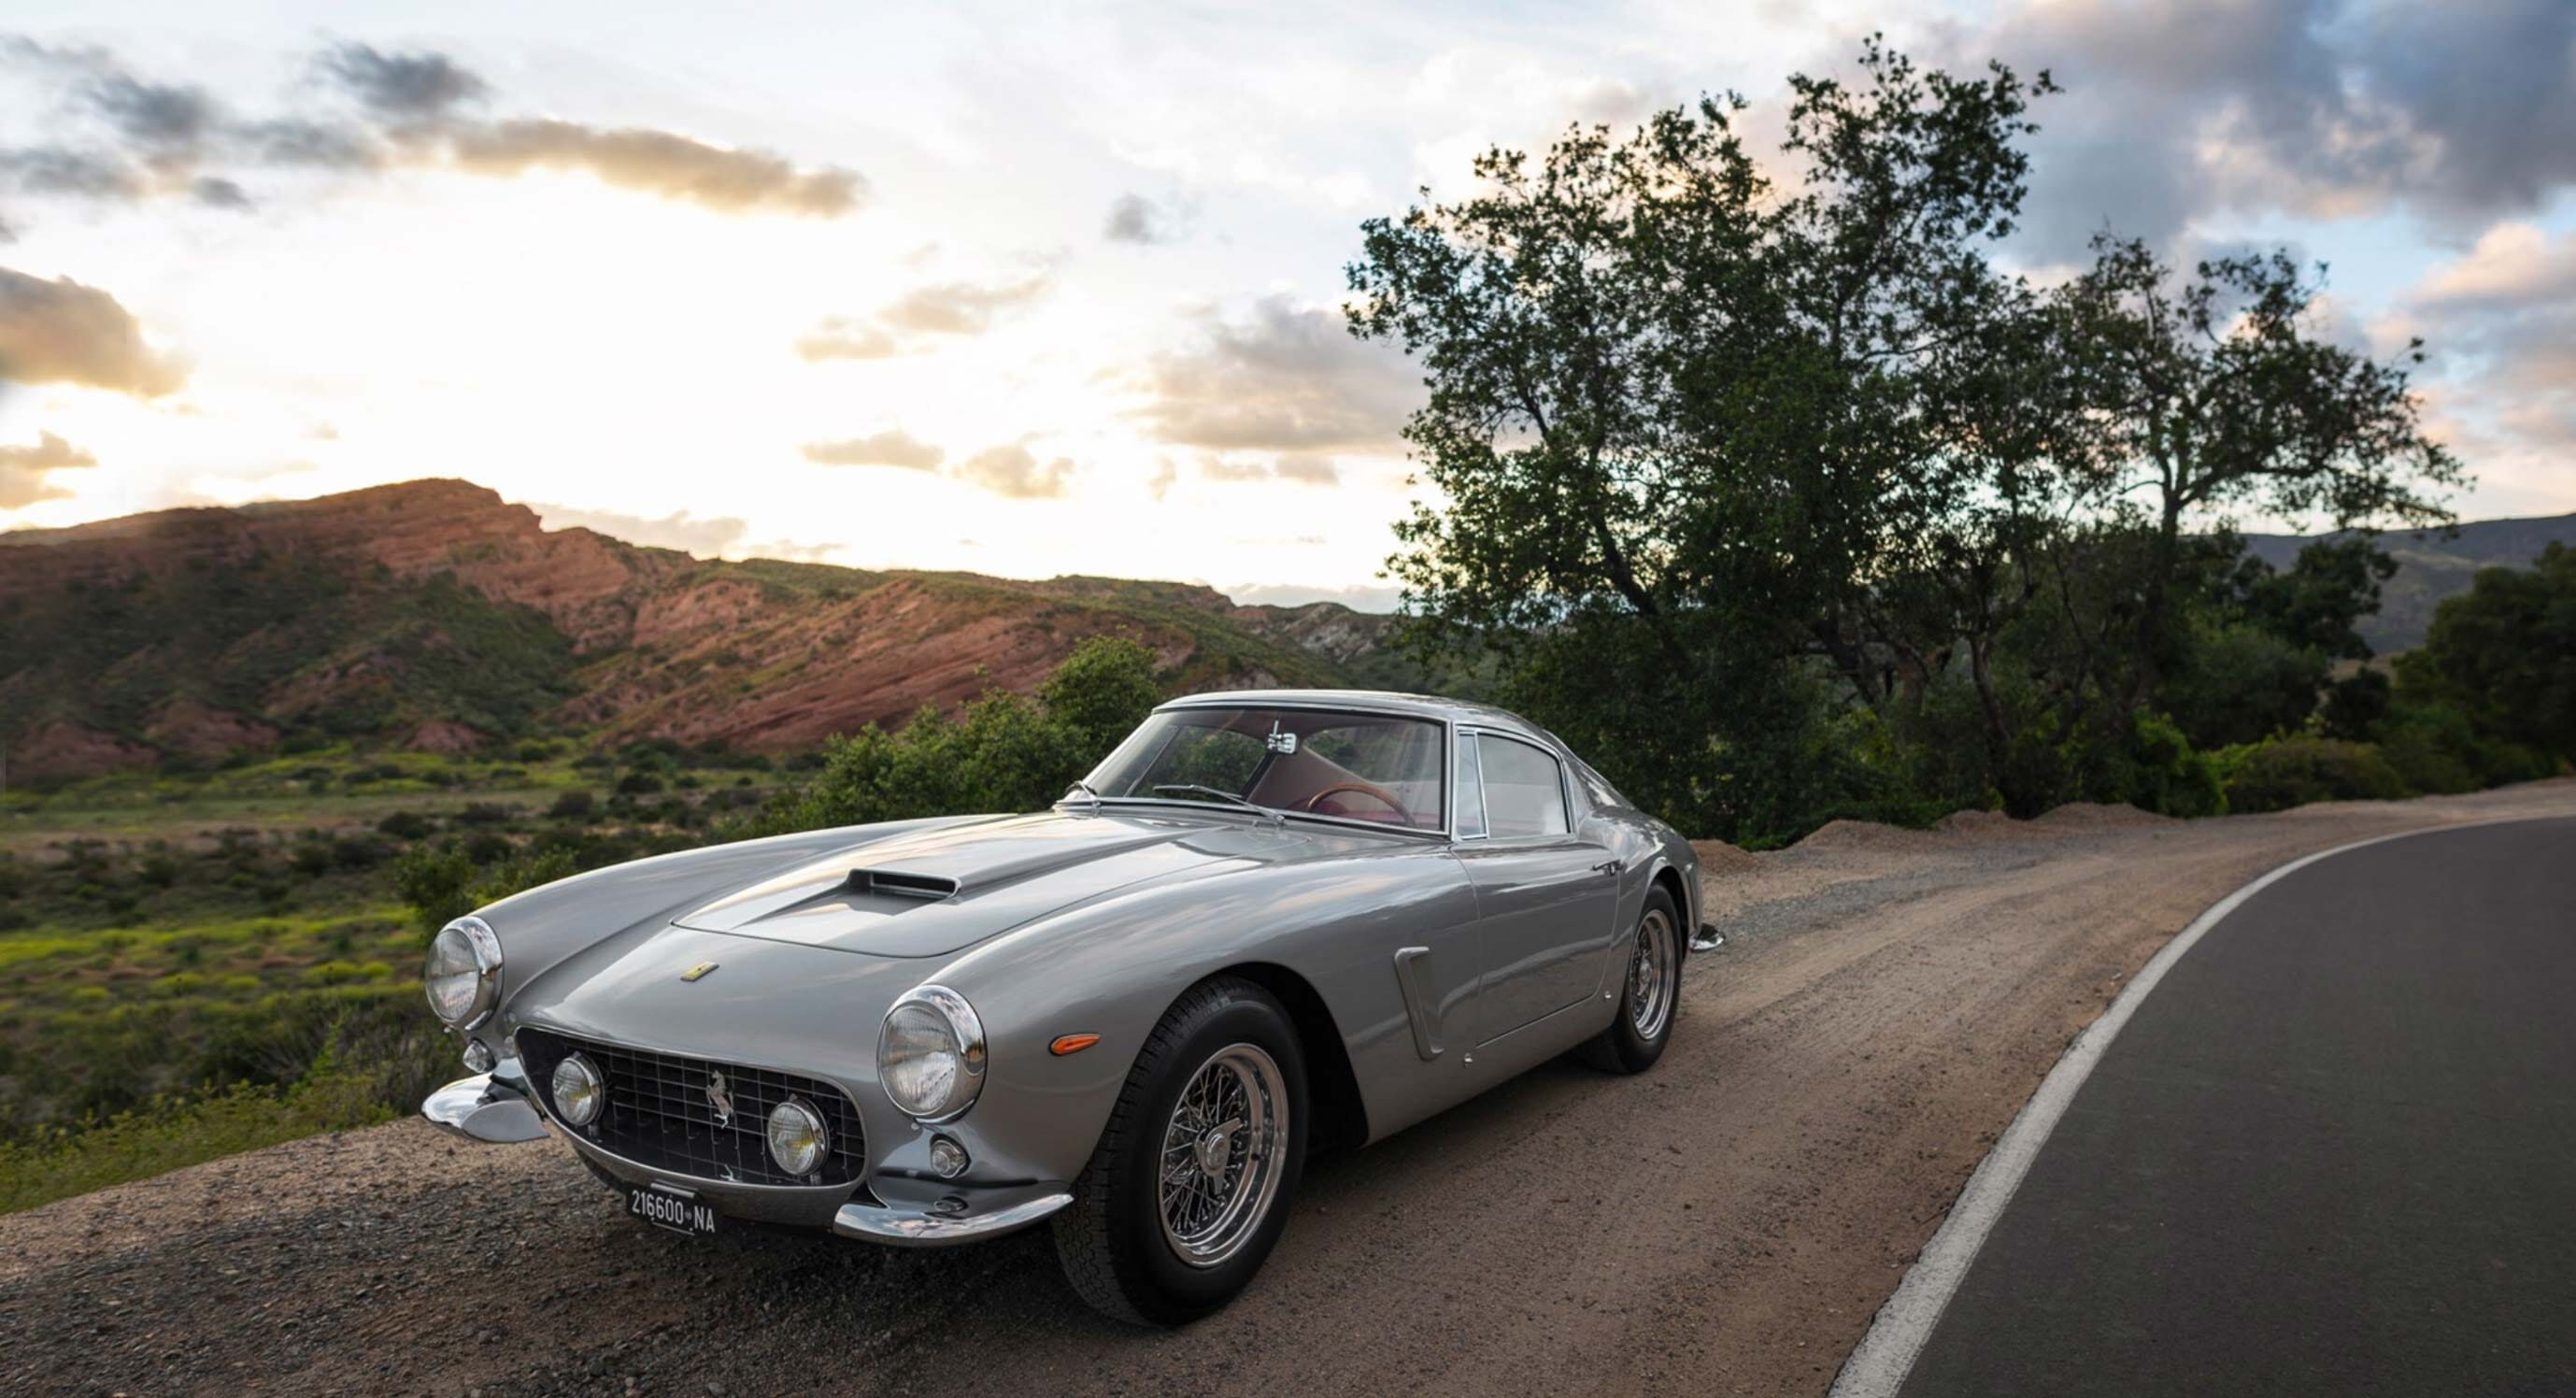 Classic Car Find of the Week: 1962 Ferrari 250 GT SWB Berlinetta